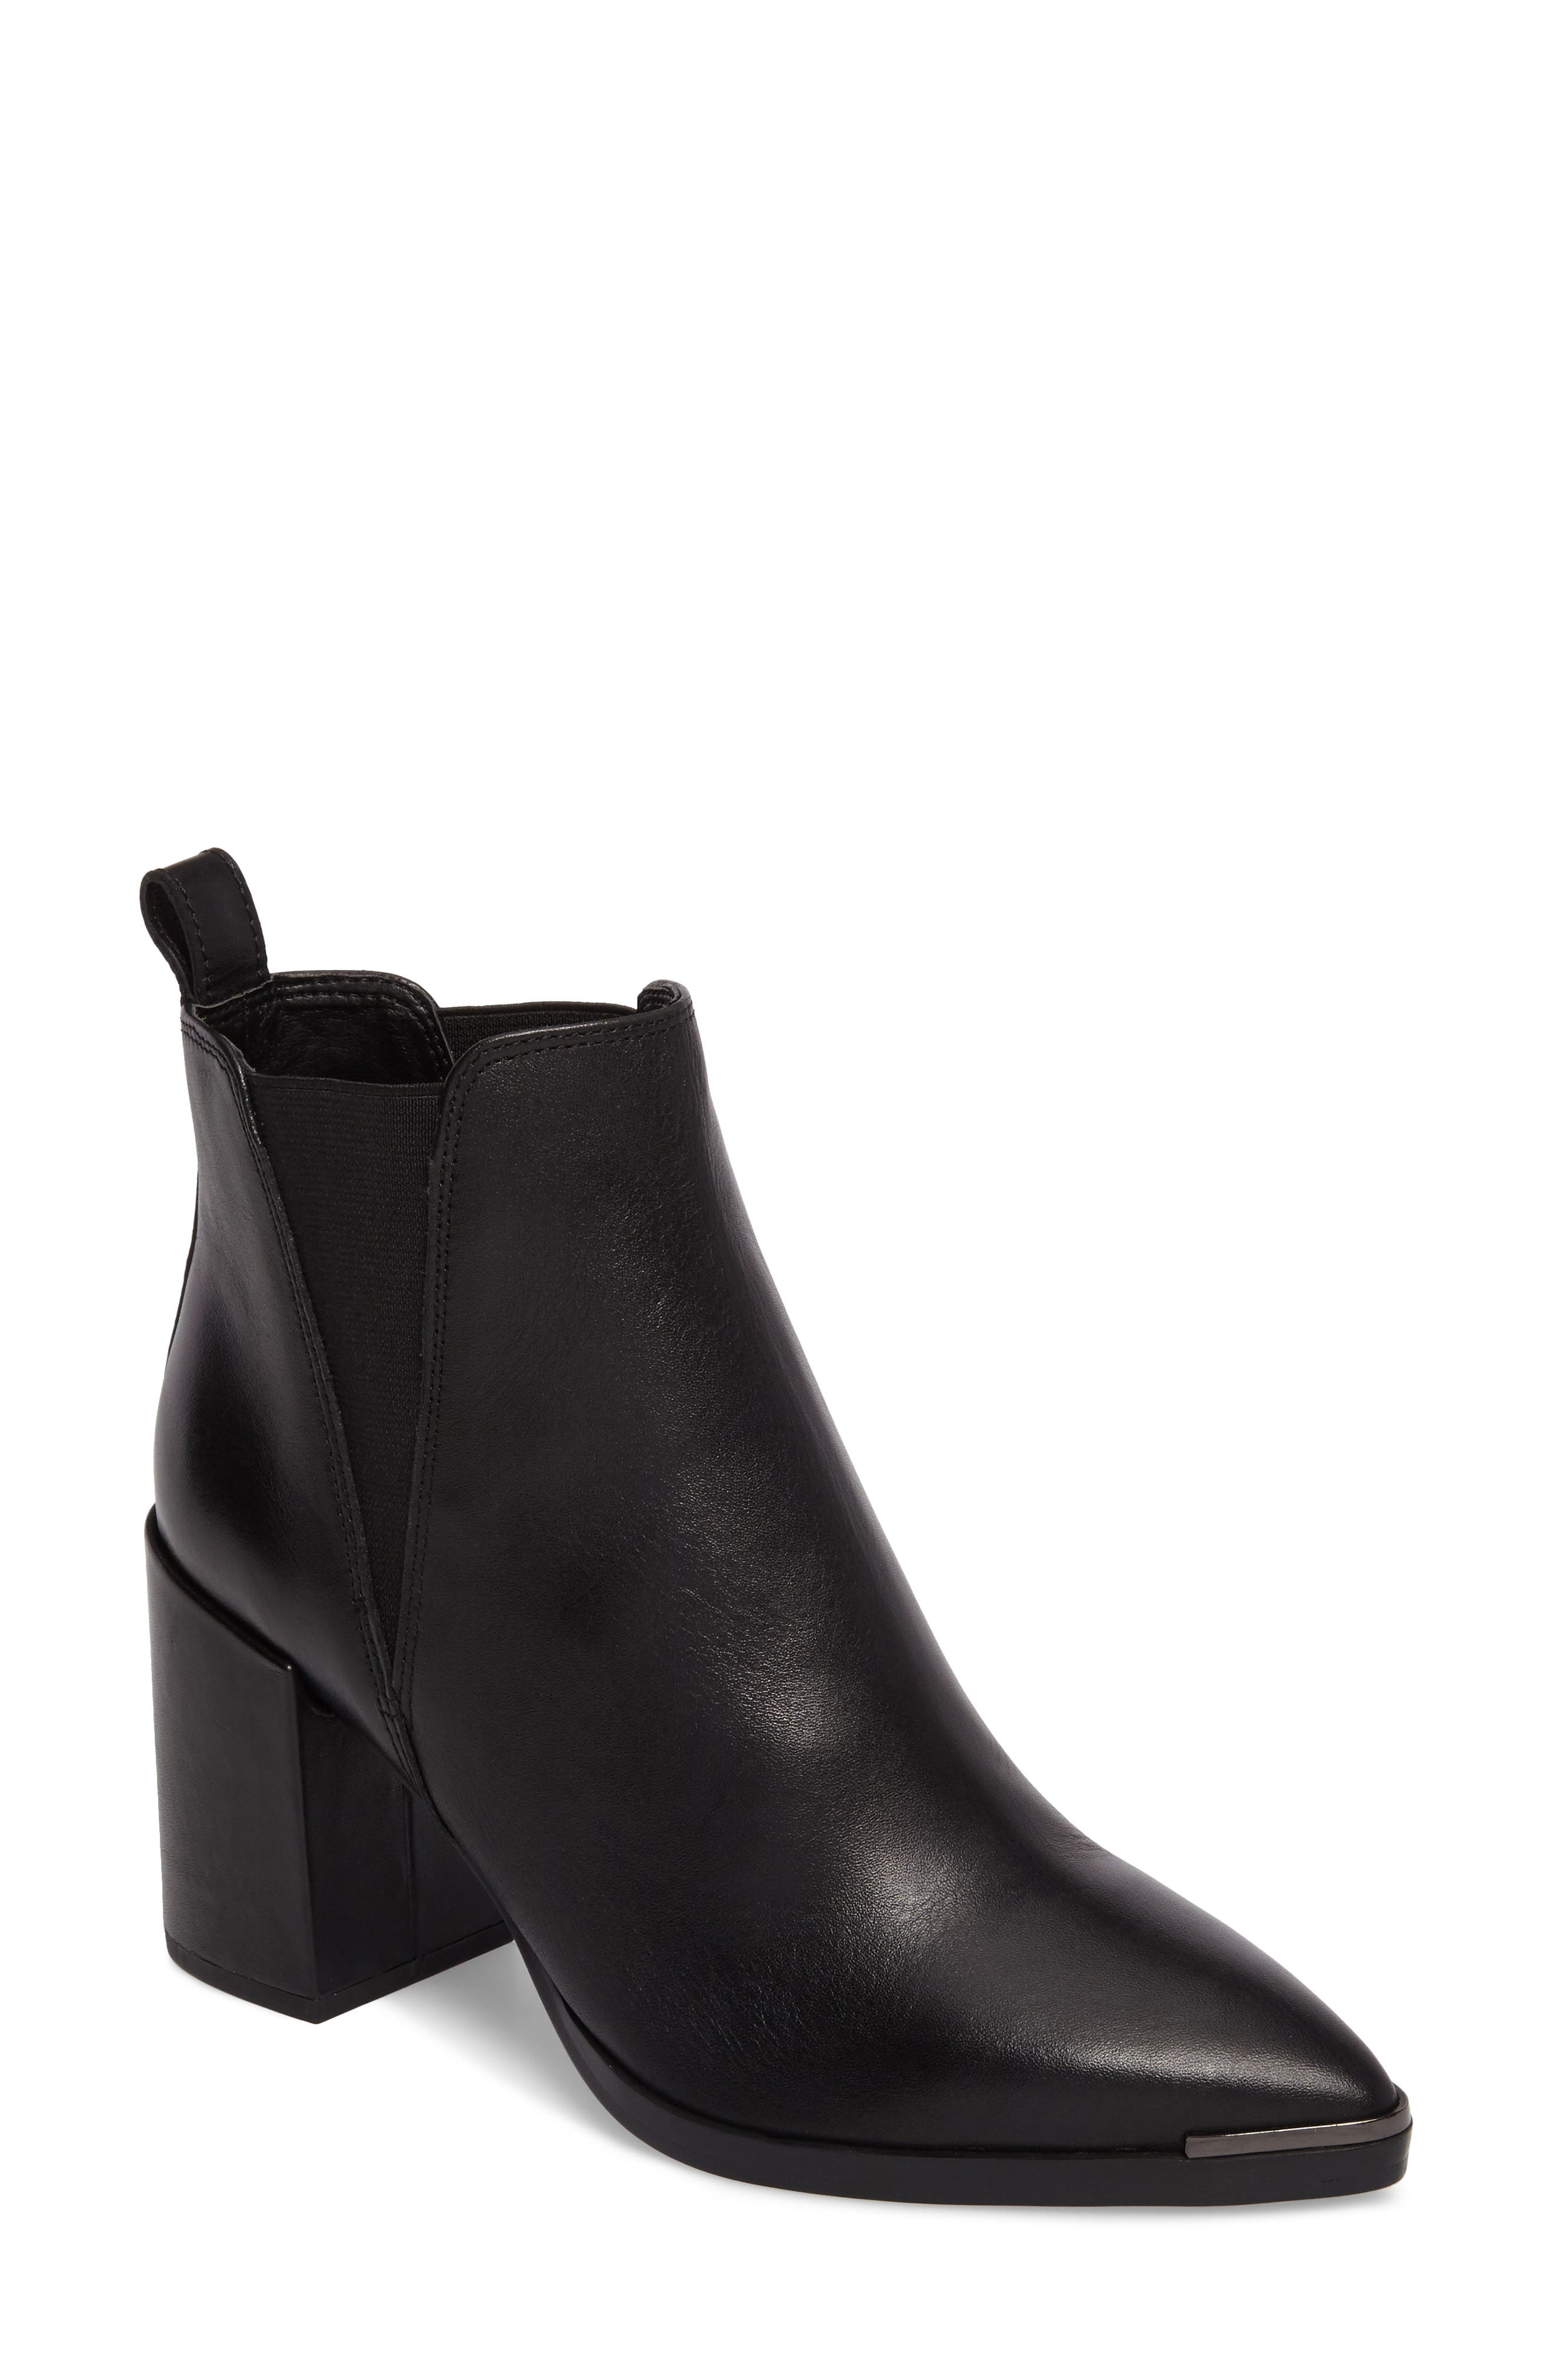 Bello Pointy Toe Bootie,                             Main thumbnail 1, color,                             Black Jetta Leather